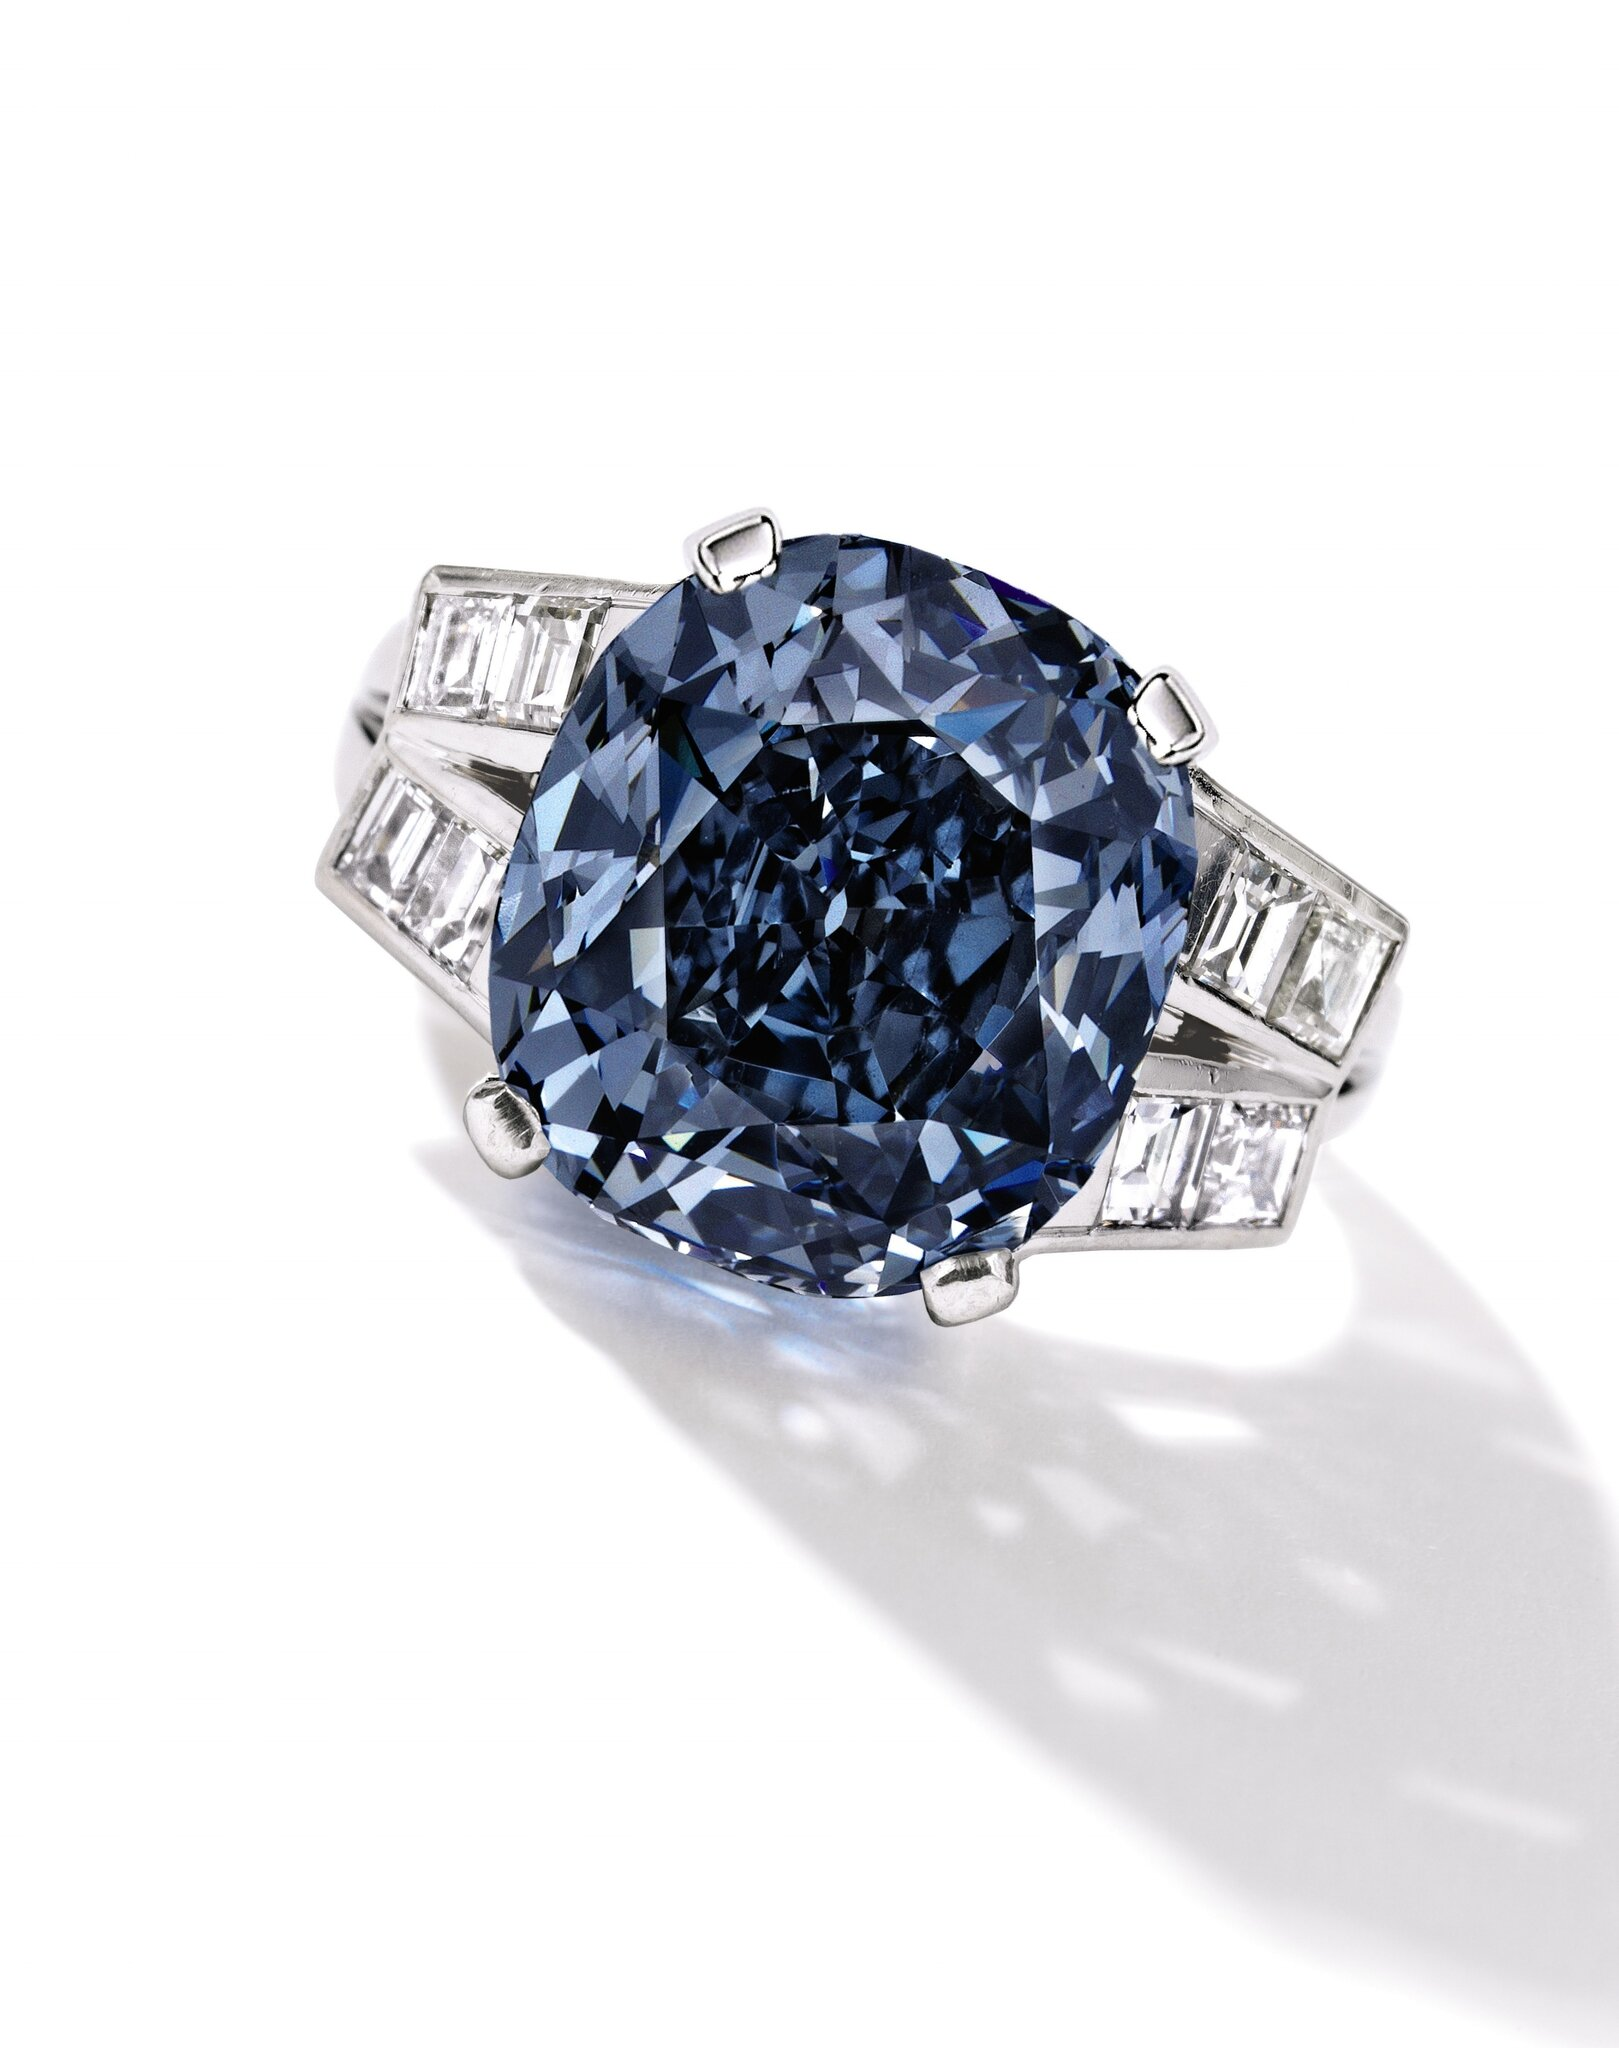 Sotheby's to Offer The Shirley Temple Blue Diamond